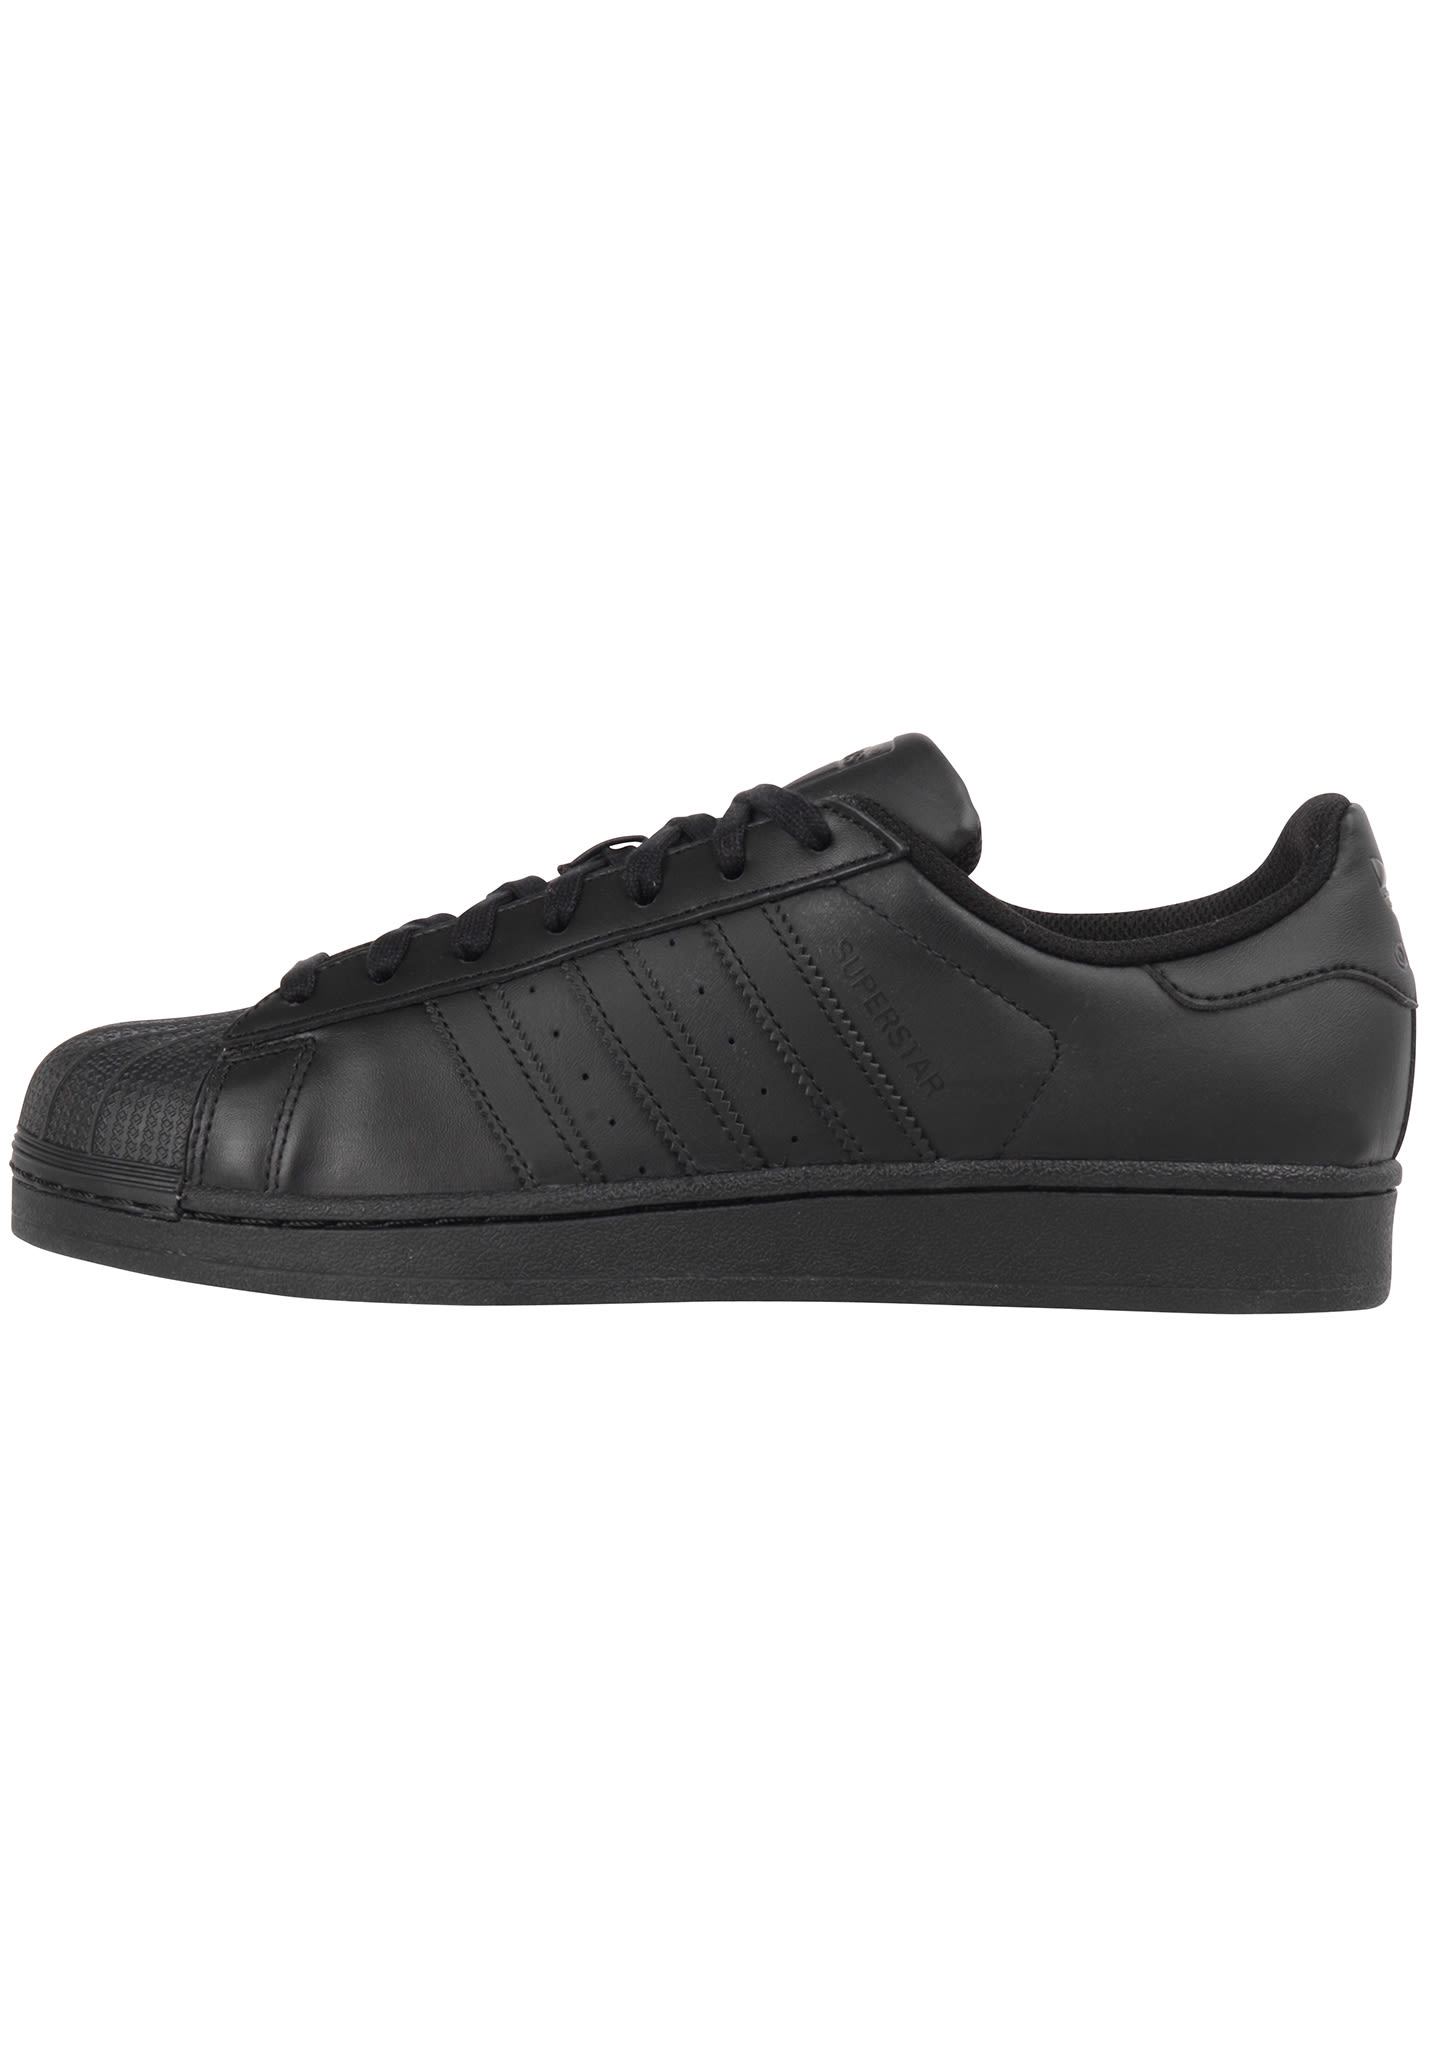 2ab36087c ADIDAS ORIGINALS Superstar - Sneakers for Men - Black - Planet Sports